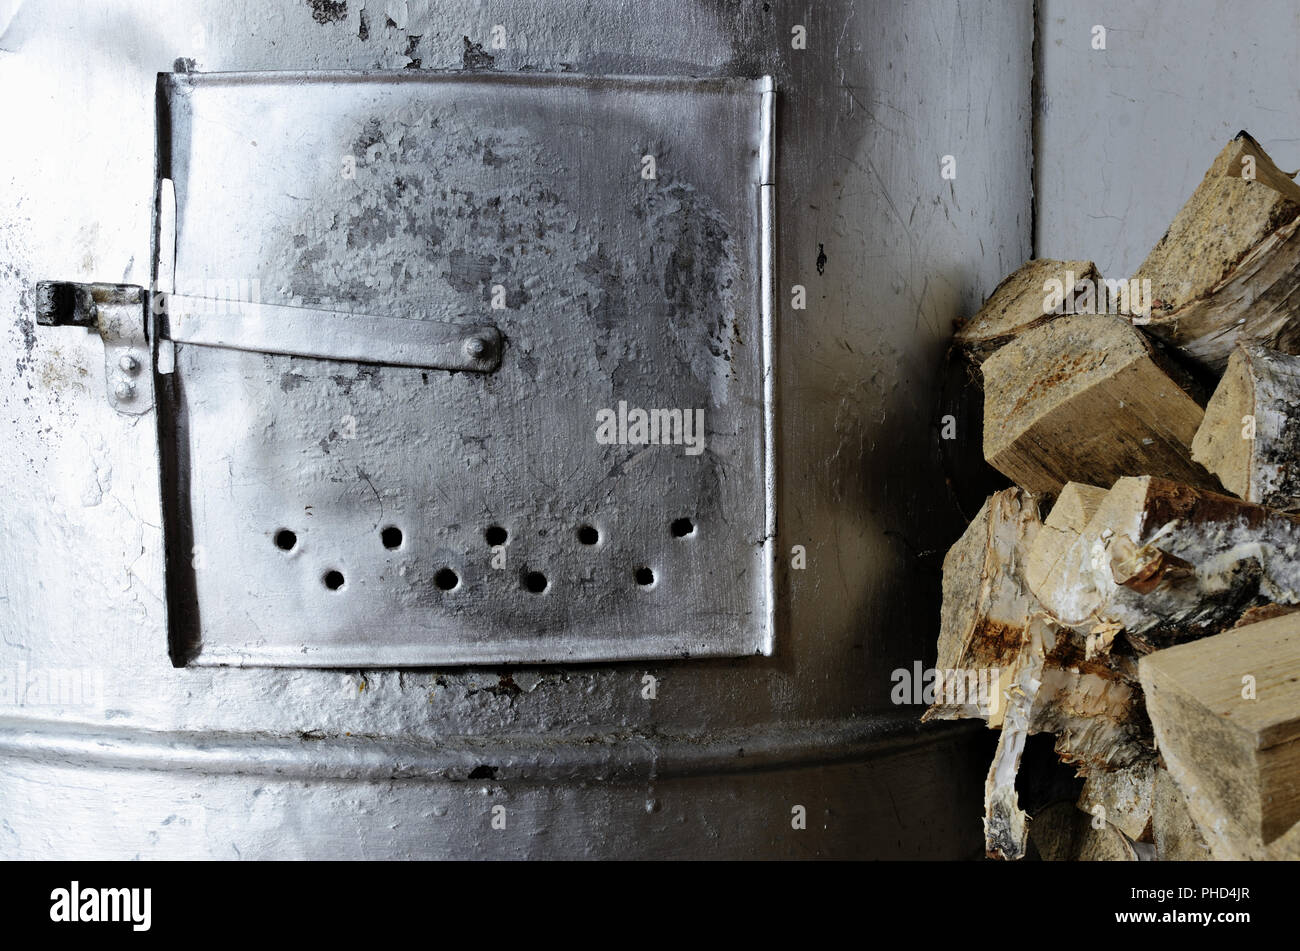 old stove and birch firewood - Stock Image